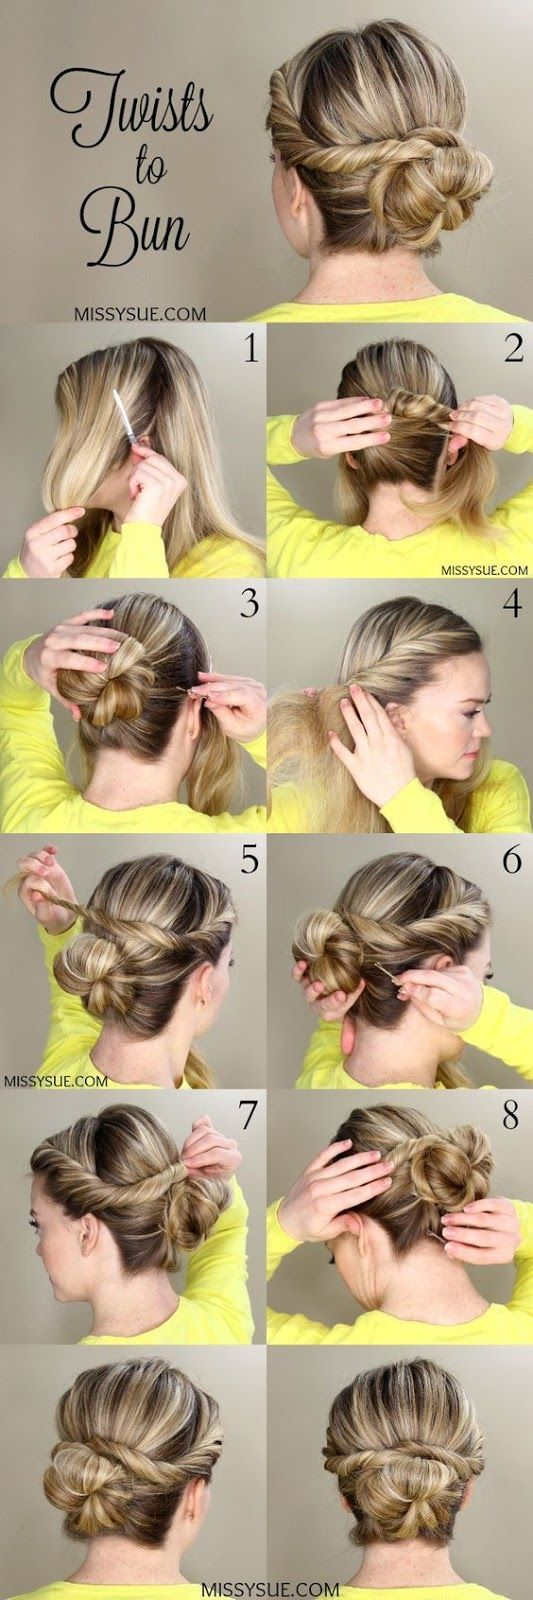 62 Simple Hairstyles Step by step to make your own